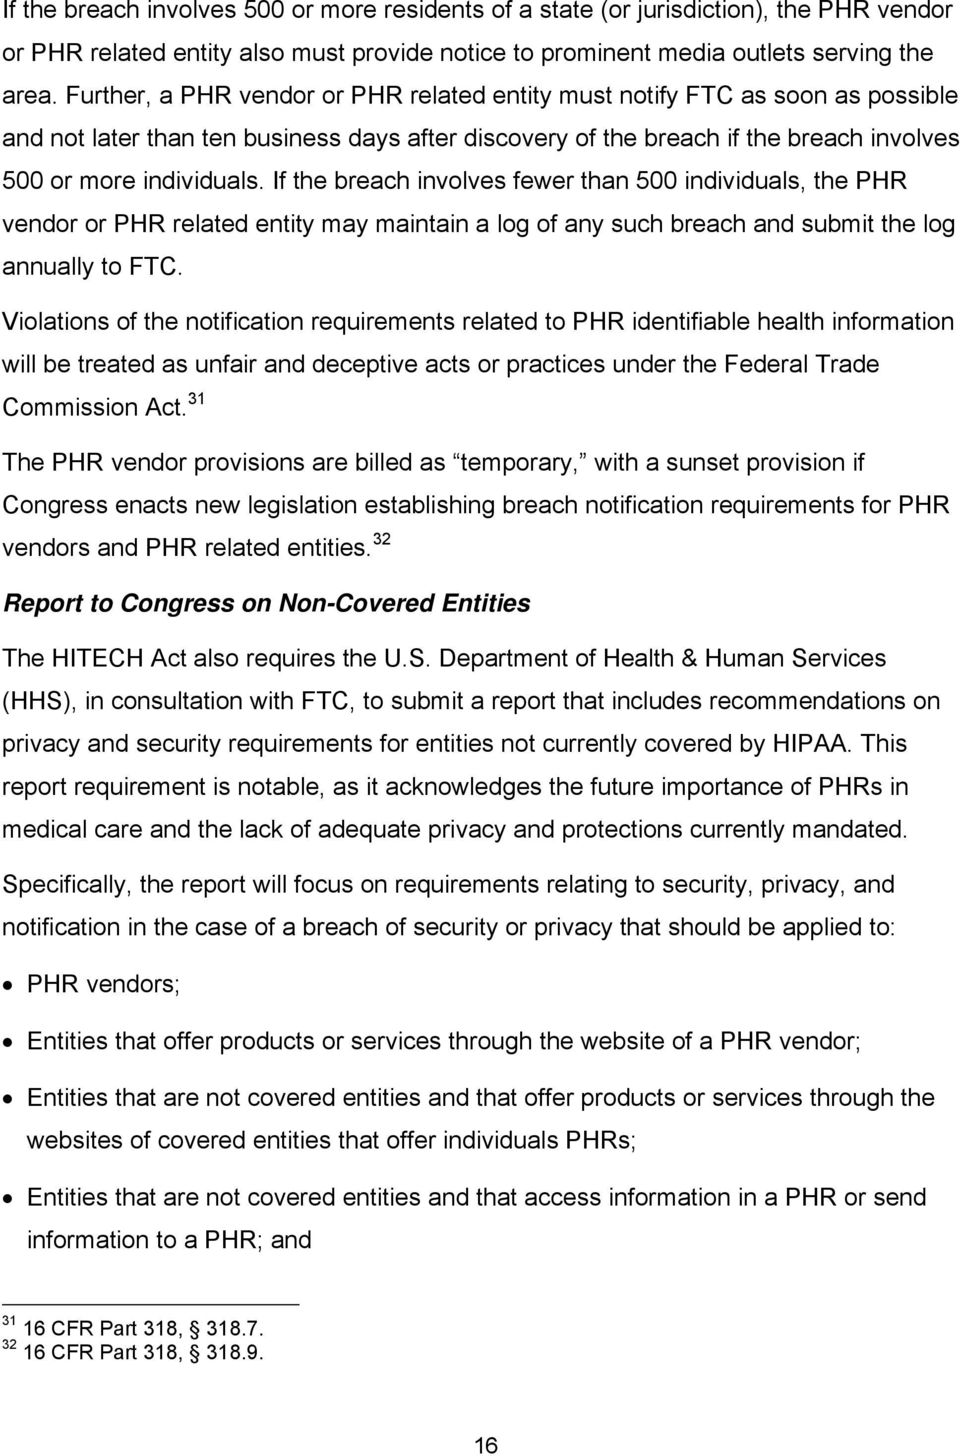 If the breach involves fewer than 500 individuals, the PHR vendor or PHR related entity may maintain a log of any such breach and submit the log annually to FTC.